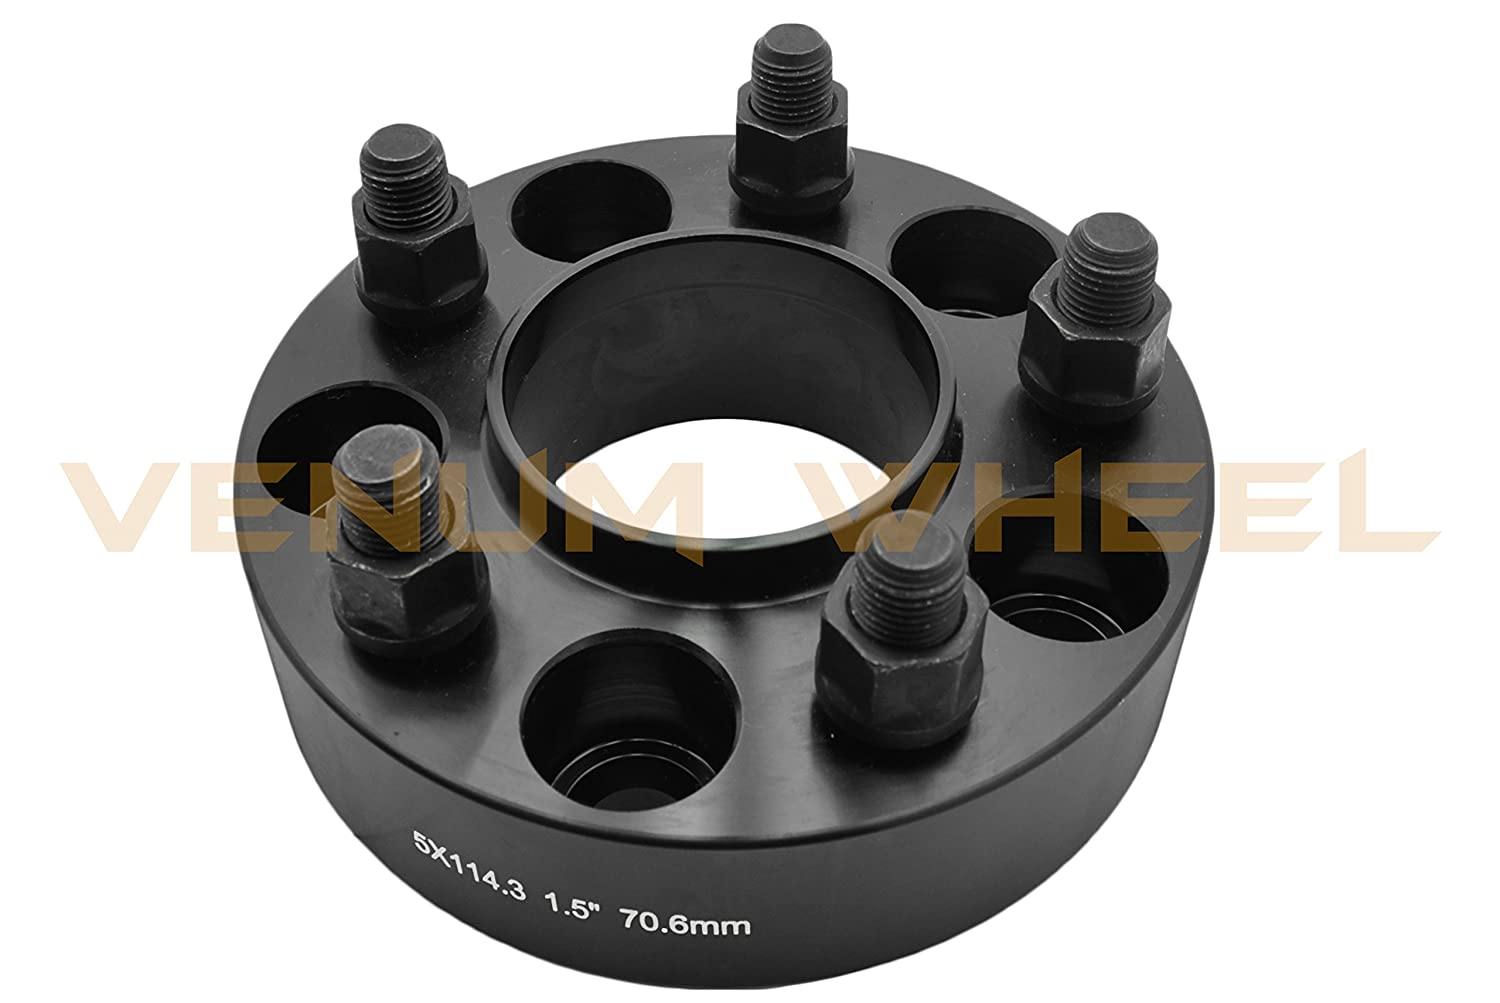 2 Pc New Model Mustangs 1.5 Black Hub Centric Wheel Spacers Adapter 5x4.5 5x114.3mm fits All Models